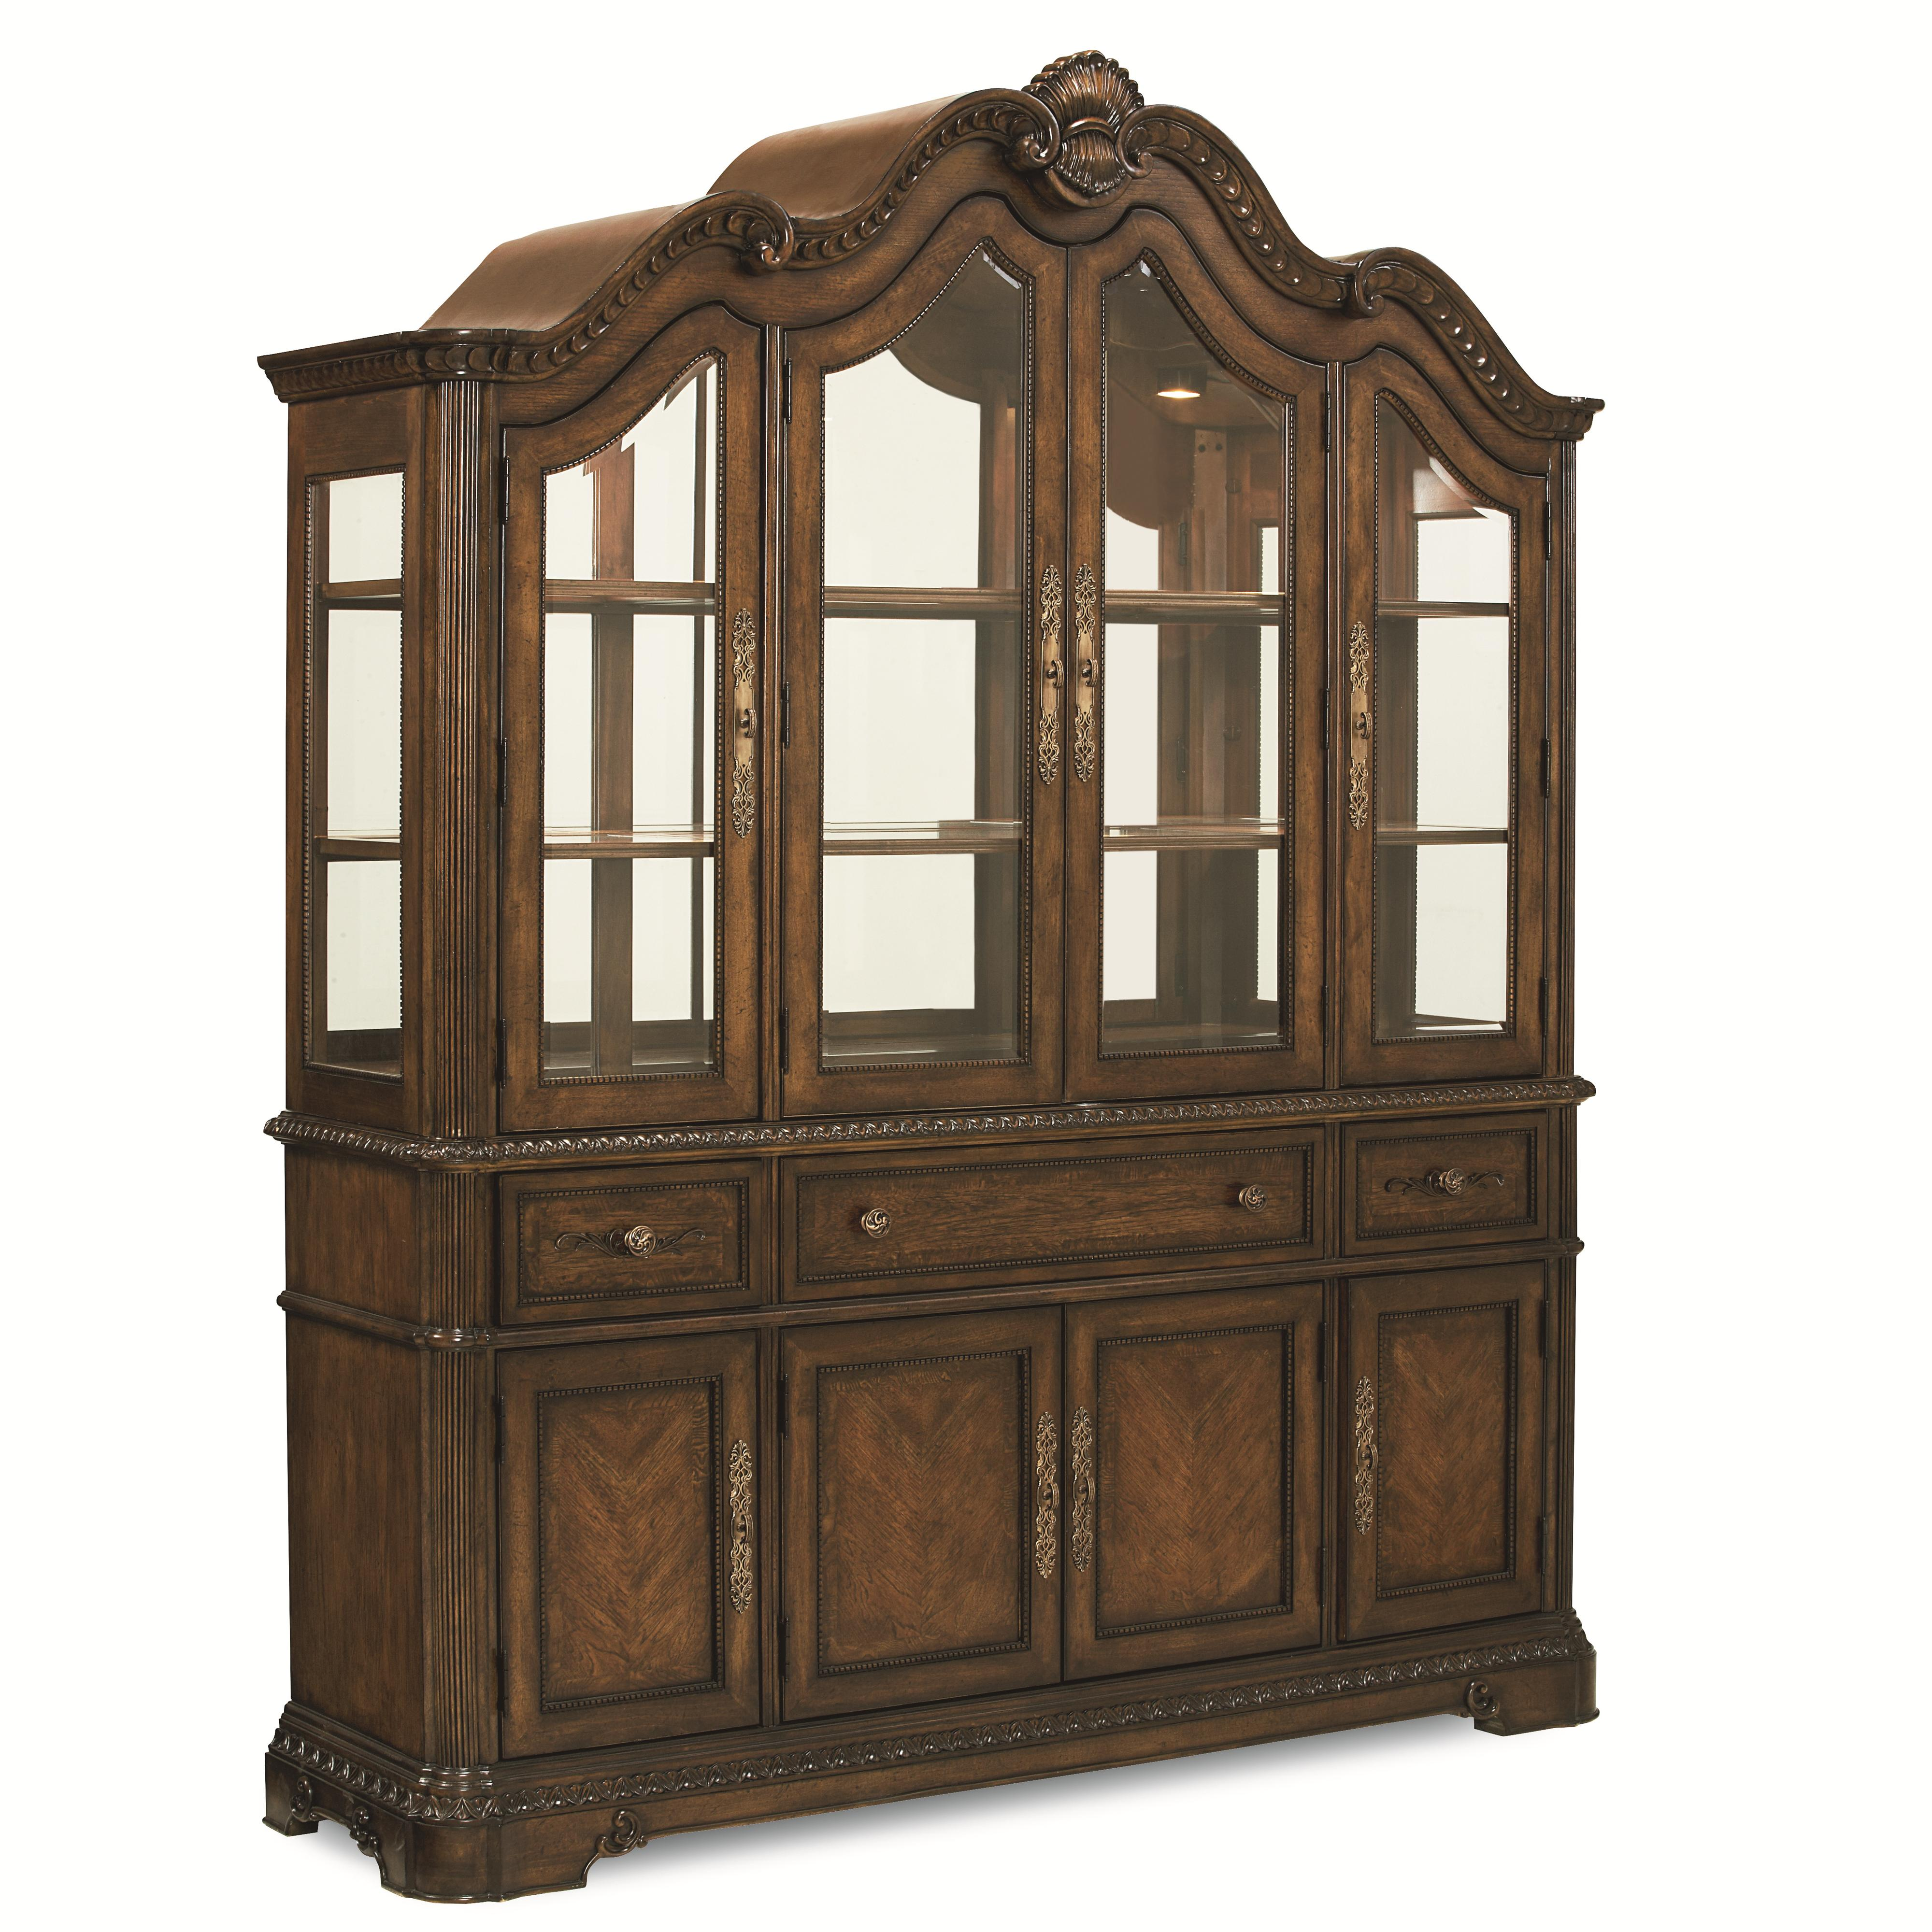 Legacy Classic Pemberleigh Dining Buffet with Hutch - Item Number: 3100-370+372